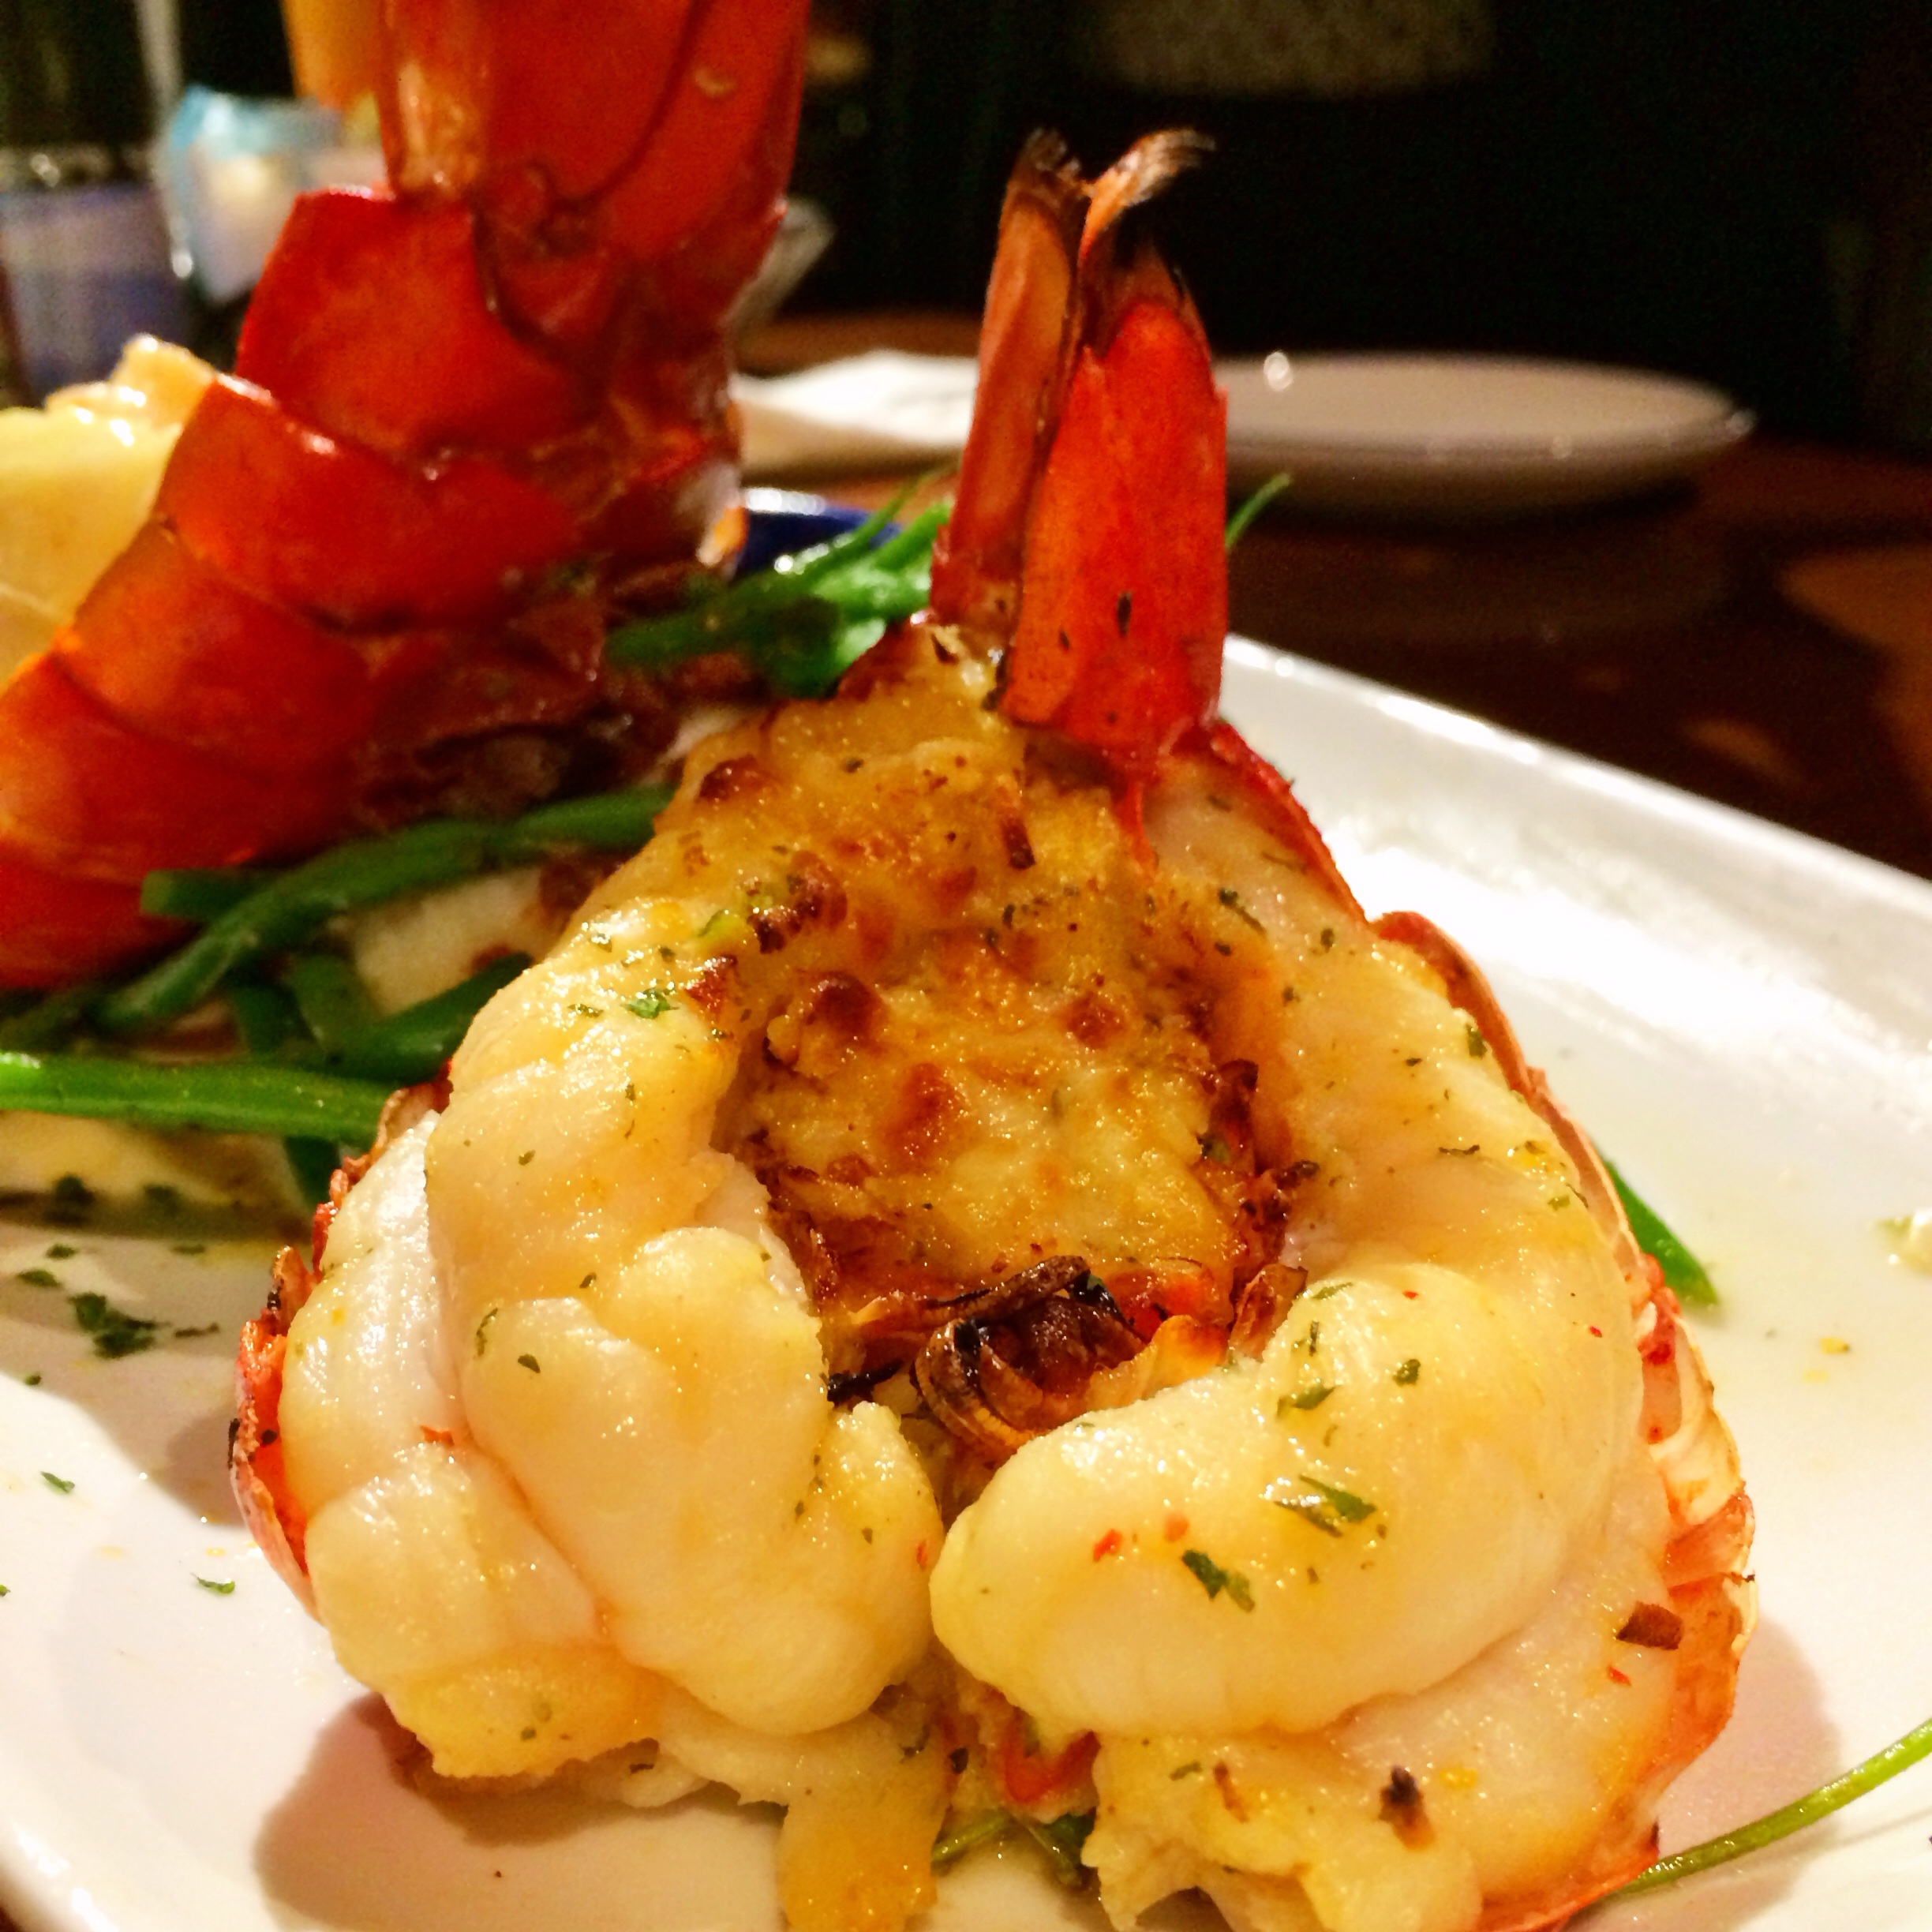 Dueling Lobster Tails. A roasted Maine lobster tail topped with tender shrimp in a creamy garlic sauce paired with a golden-baked Maine lobster tail with crab-and-seafood stuffing. Served over mashed potatoes, roasted tomatoes and green beans